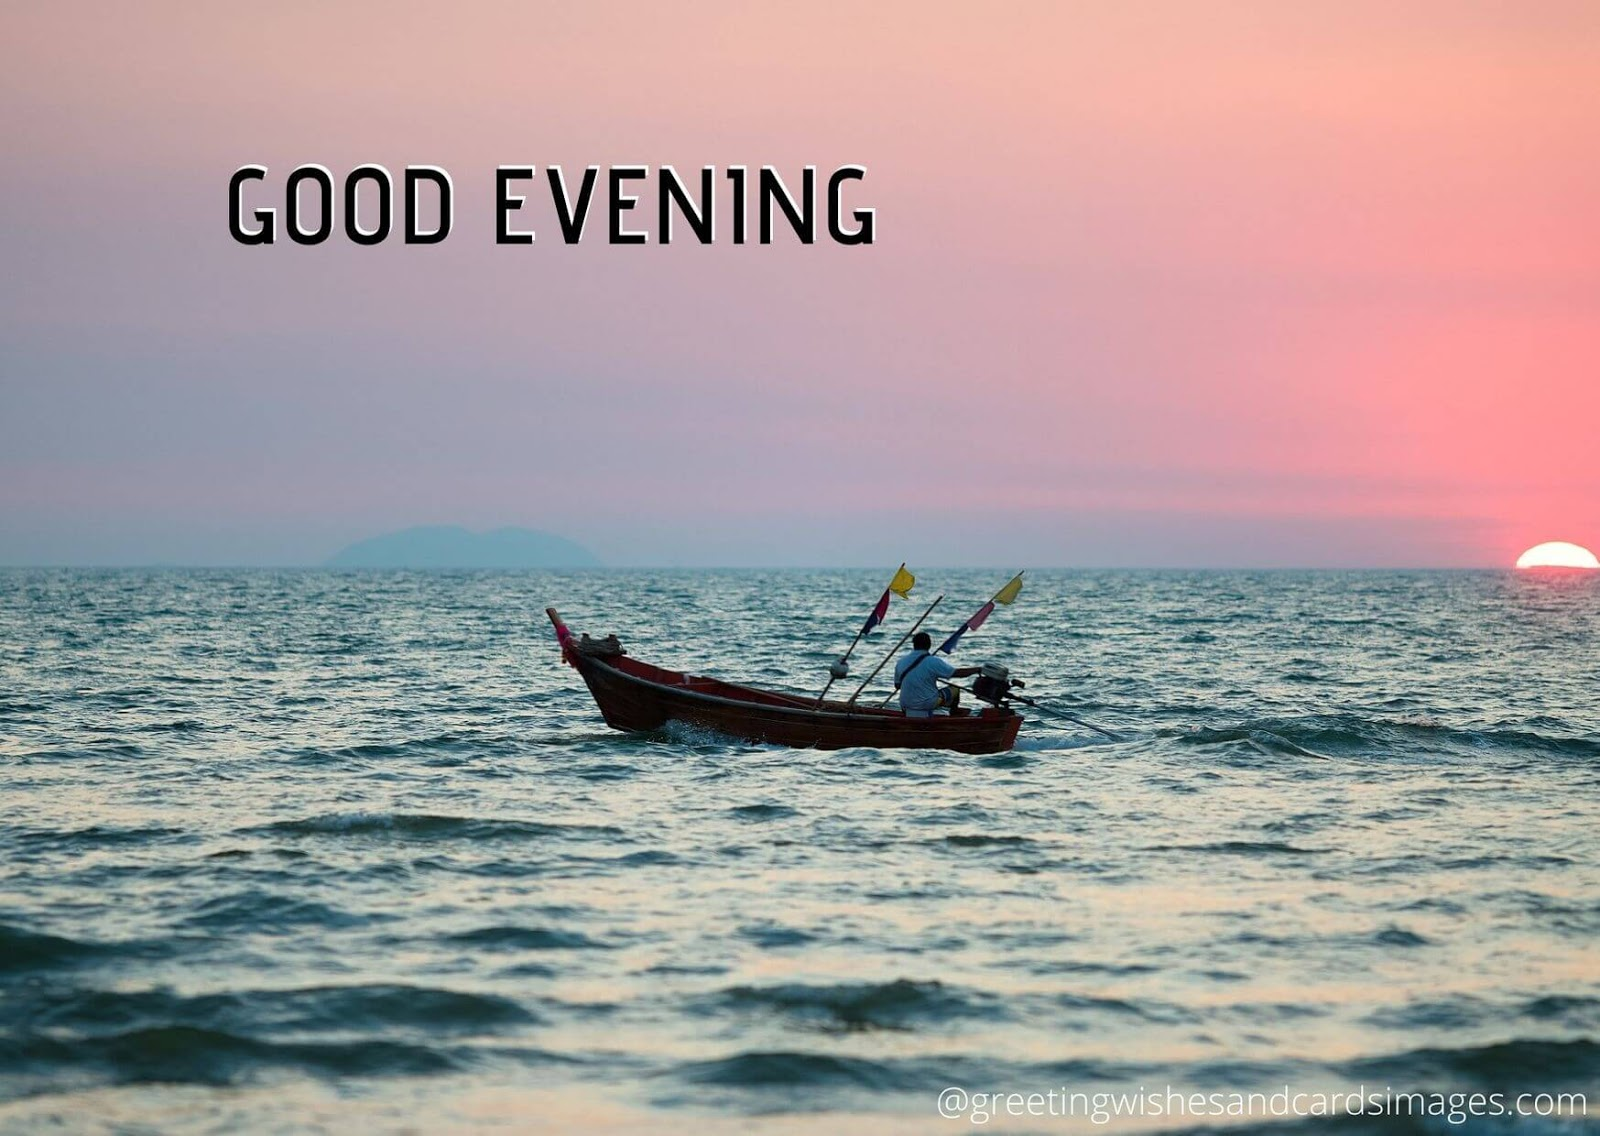 Good Evening 2020 Greeting Wishes